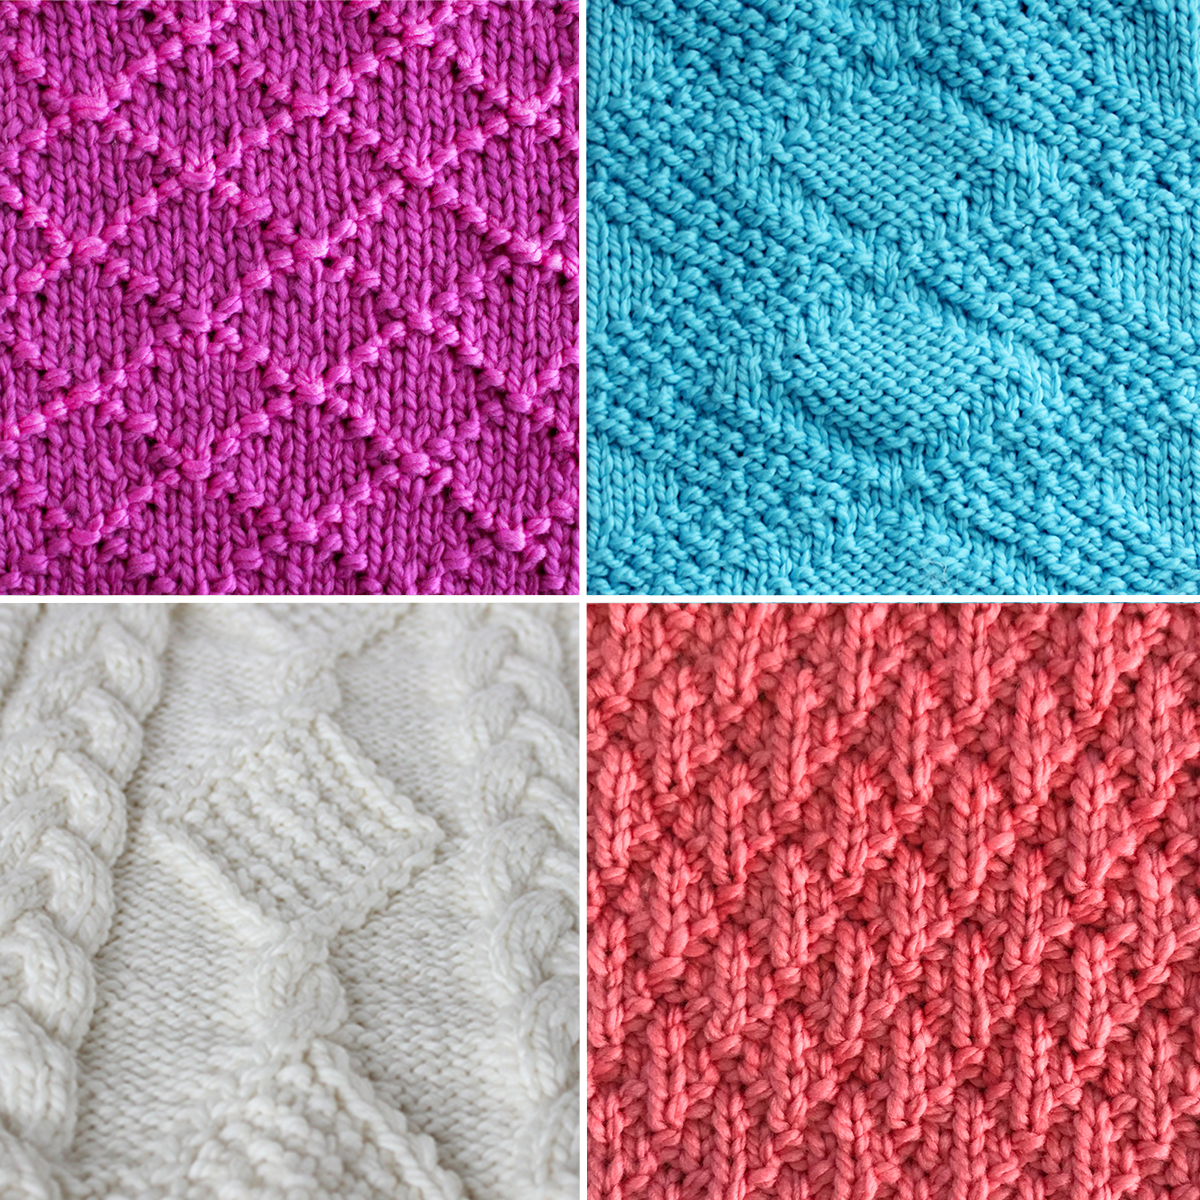 Collection of four diamond knit stitch patterns in pink, blue, and white yarn colors.